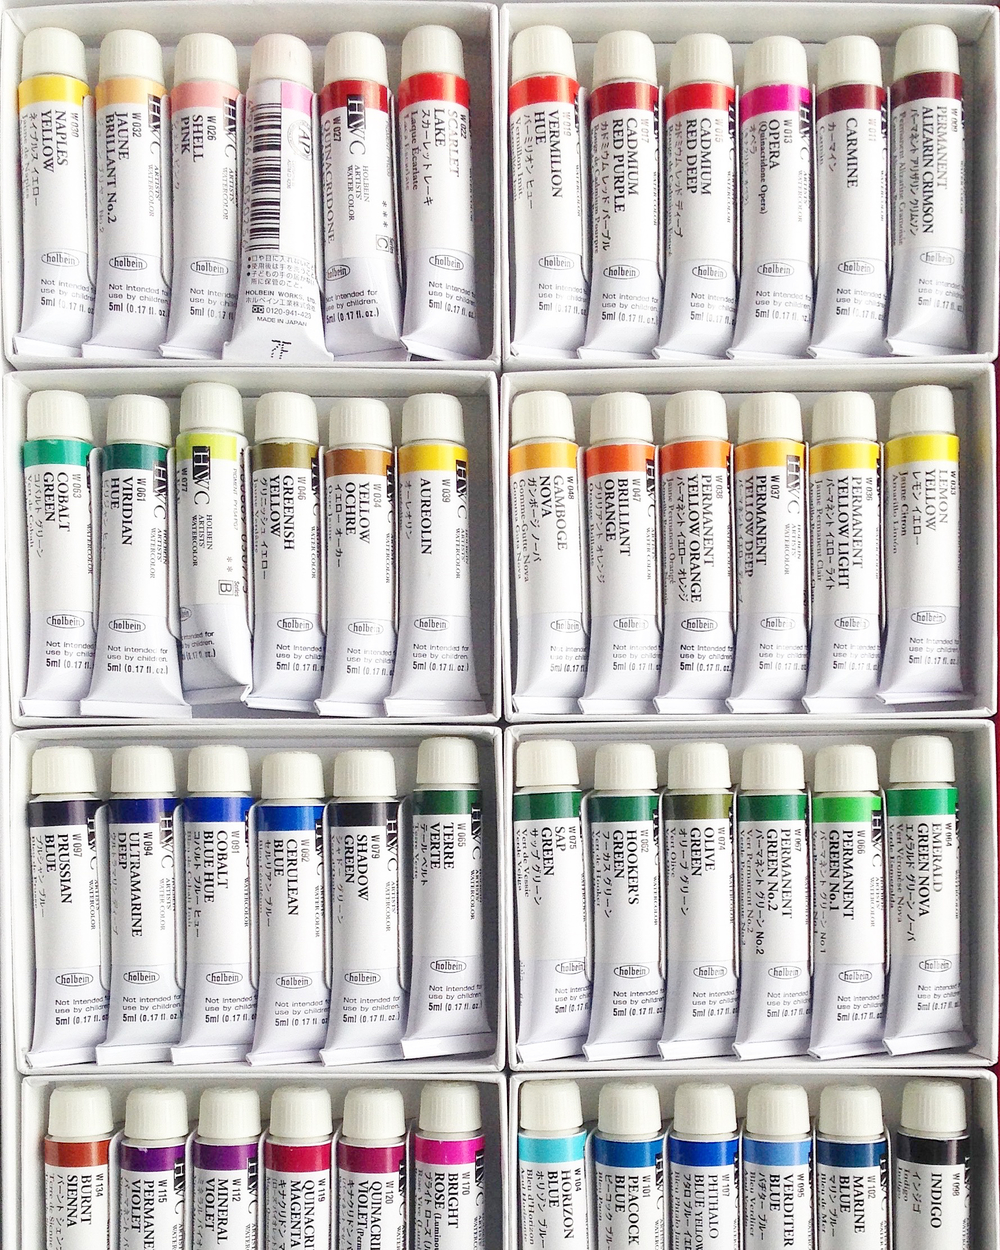 HOLBEIN 60 COLOR WATERCOLOR SET